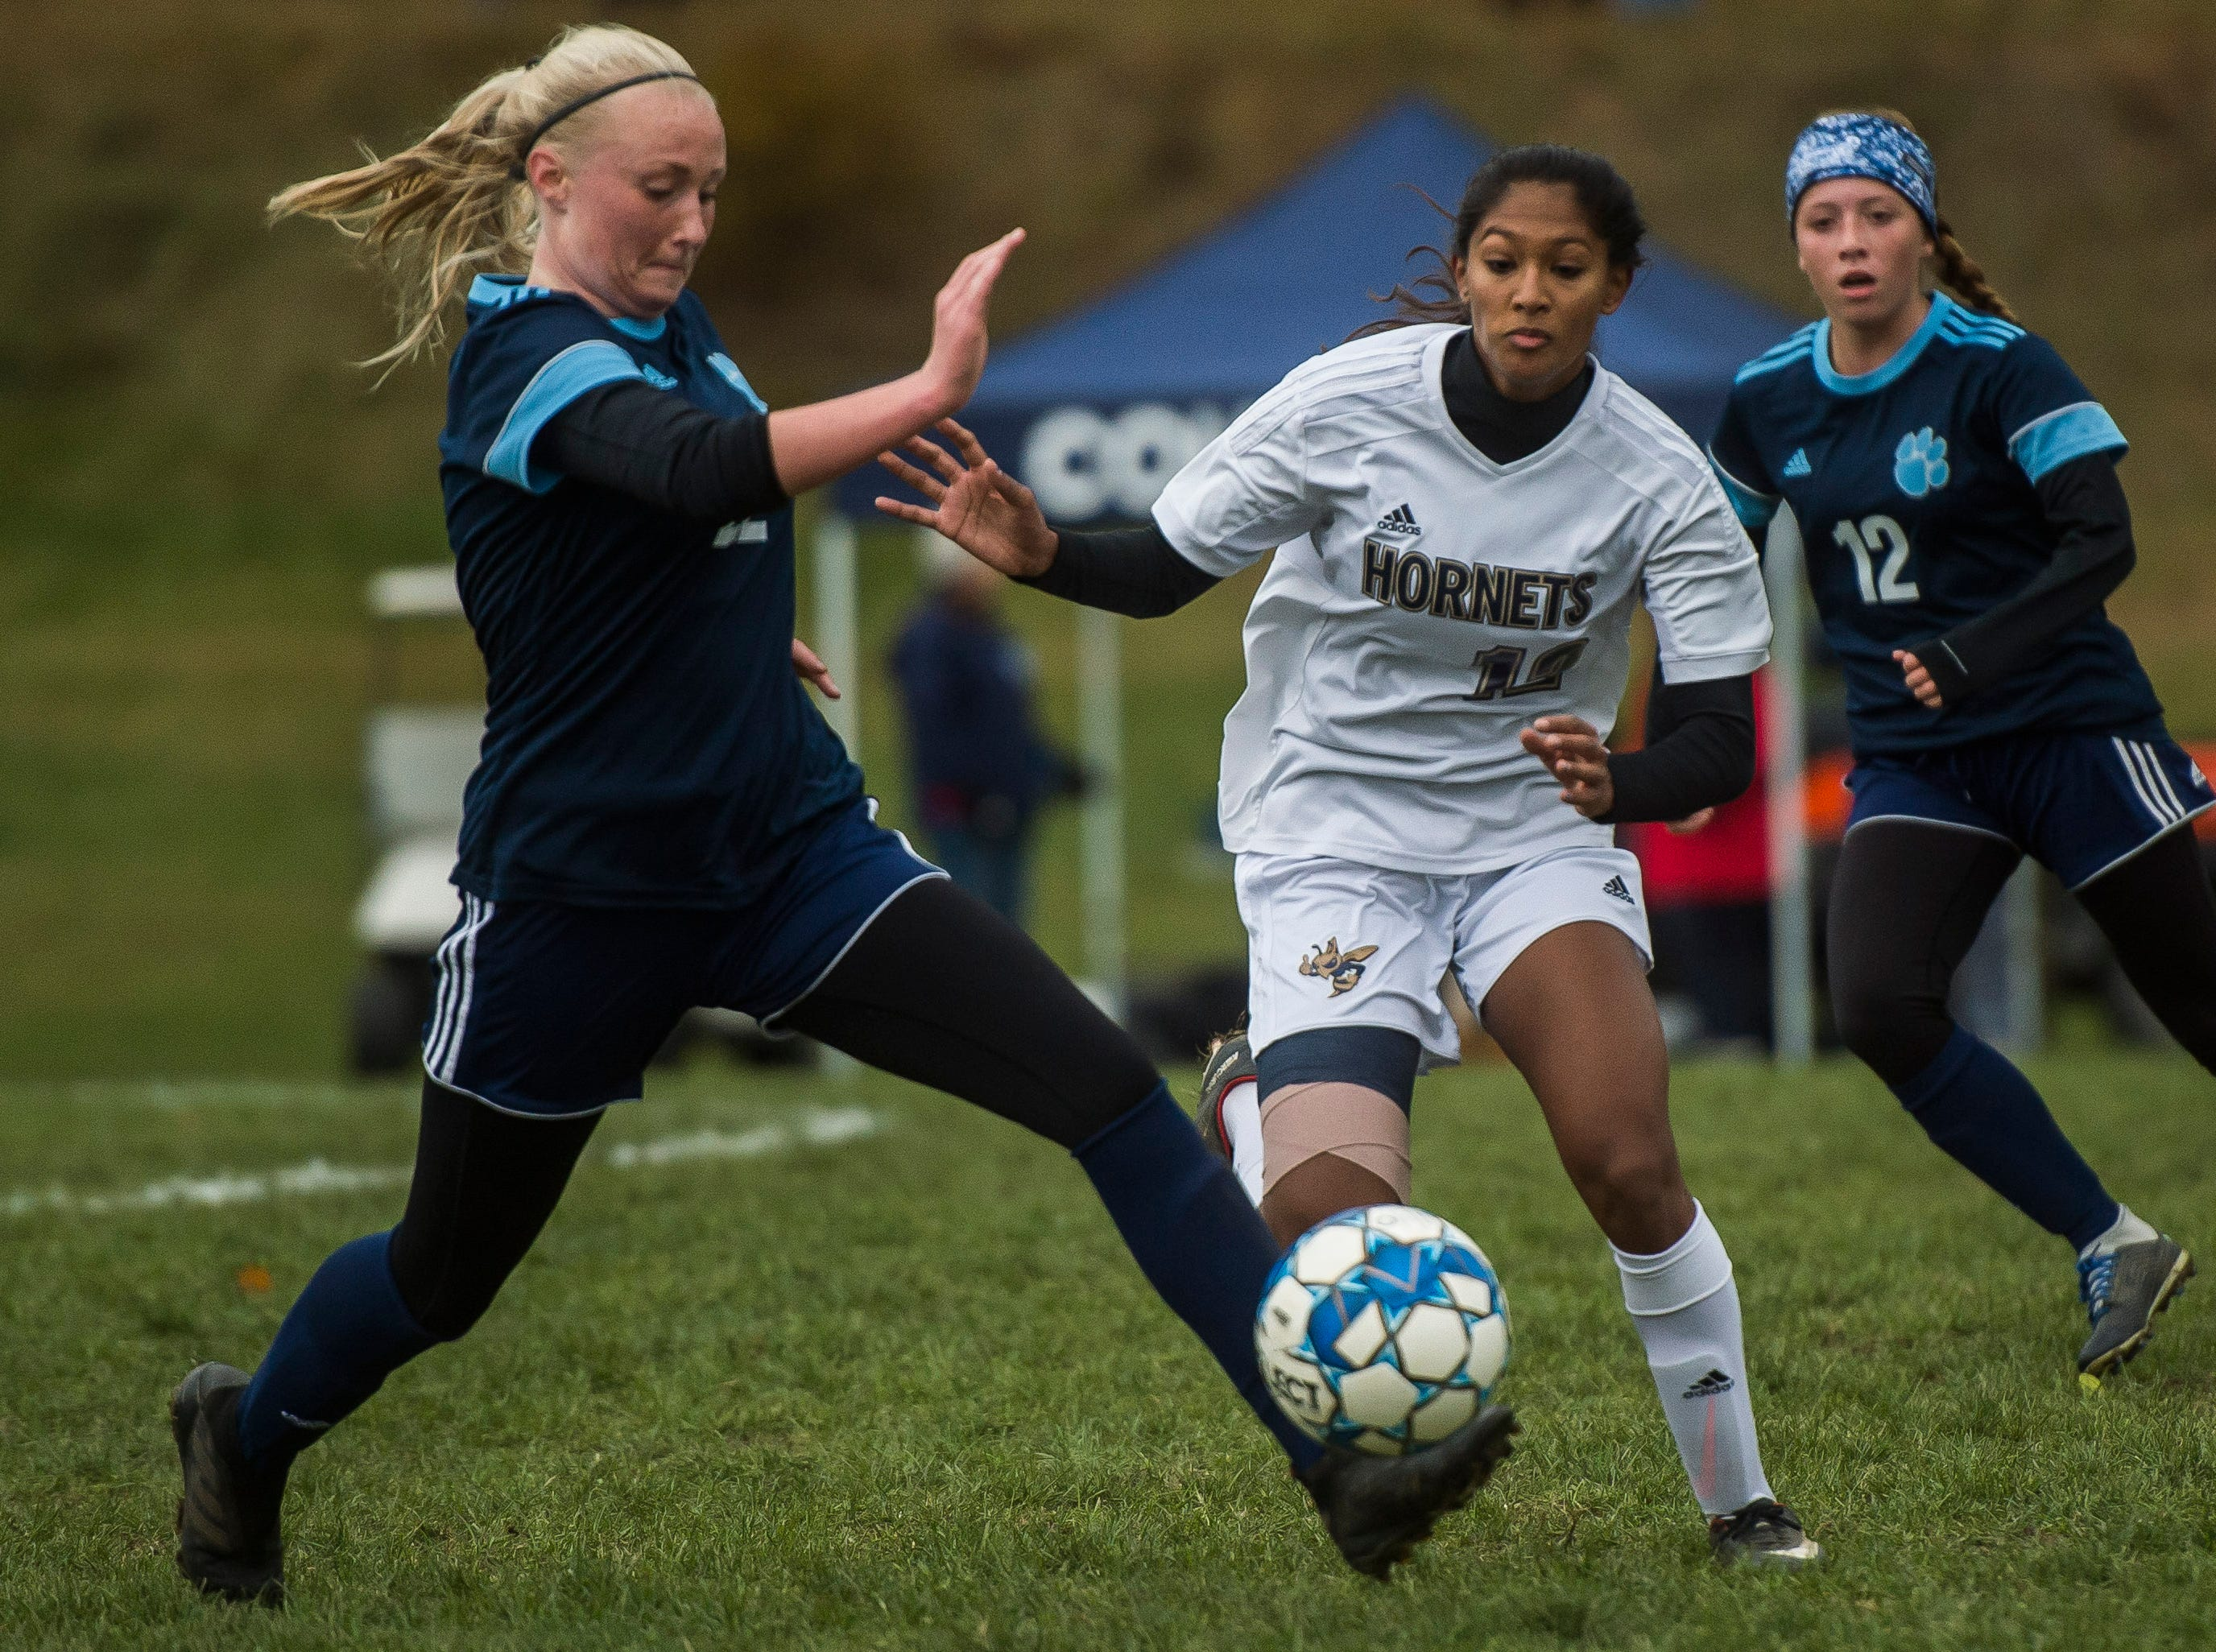 MMU #22 Willa Clark gets to the ball ahead of Essex #12 Souma Mitra during their quarter-final game in Jericho on Saturday, Oct. 27, 2018, that went into double overtime and shootout. Essex took the penalty kick contest to win, 4-1.